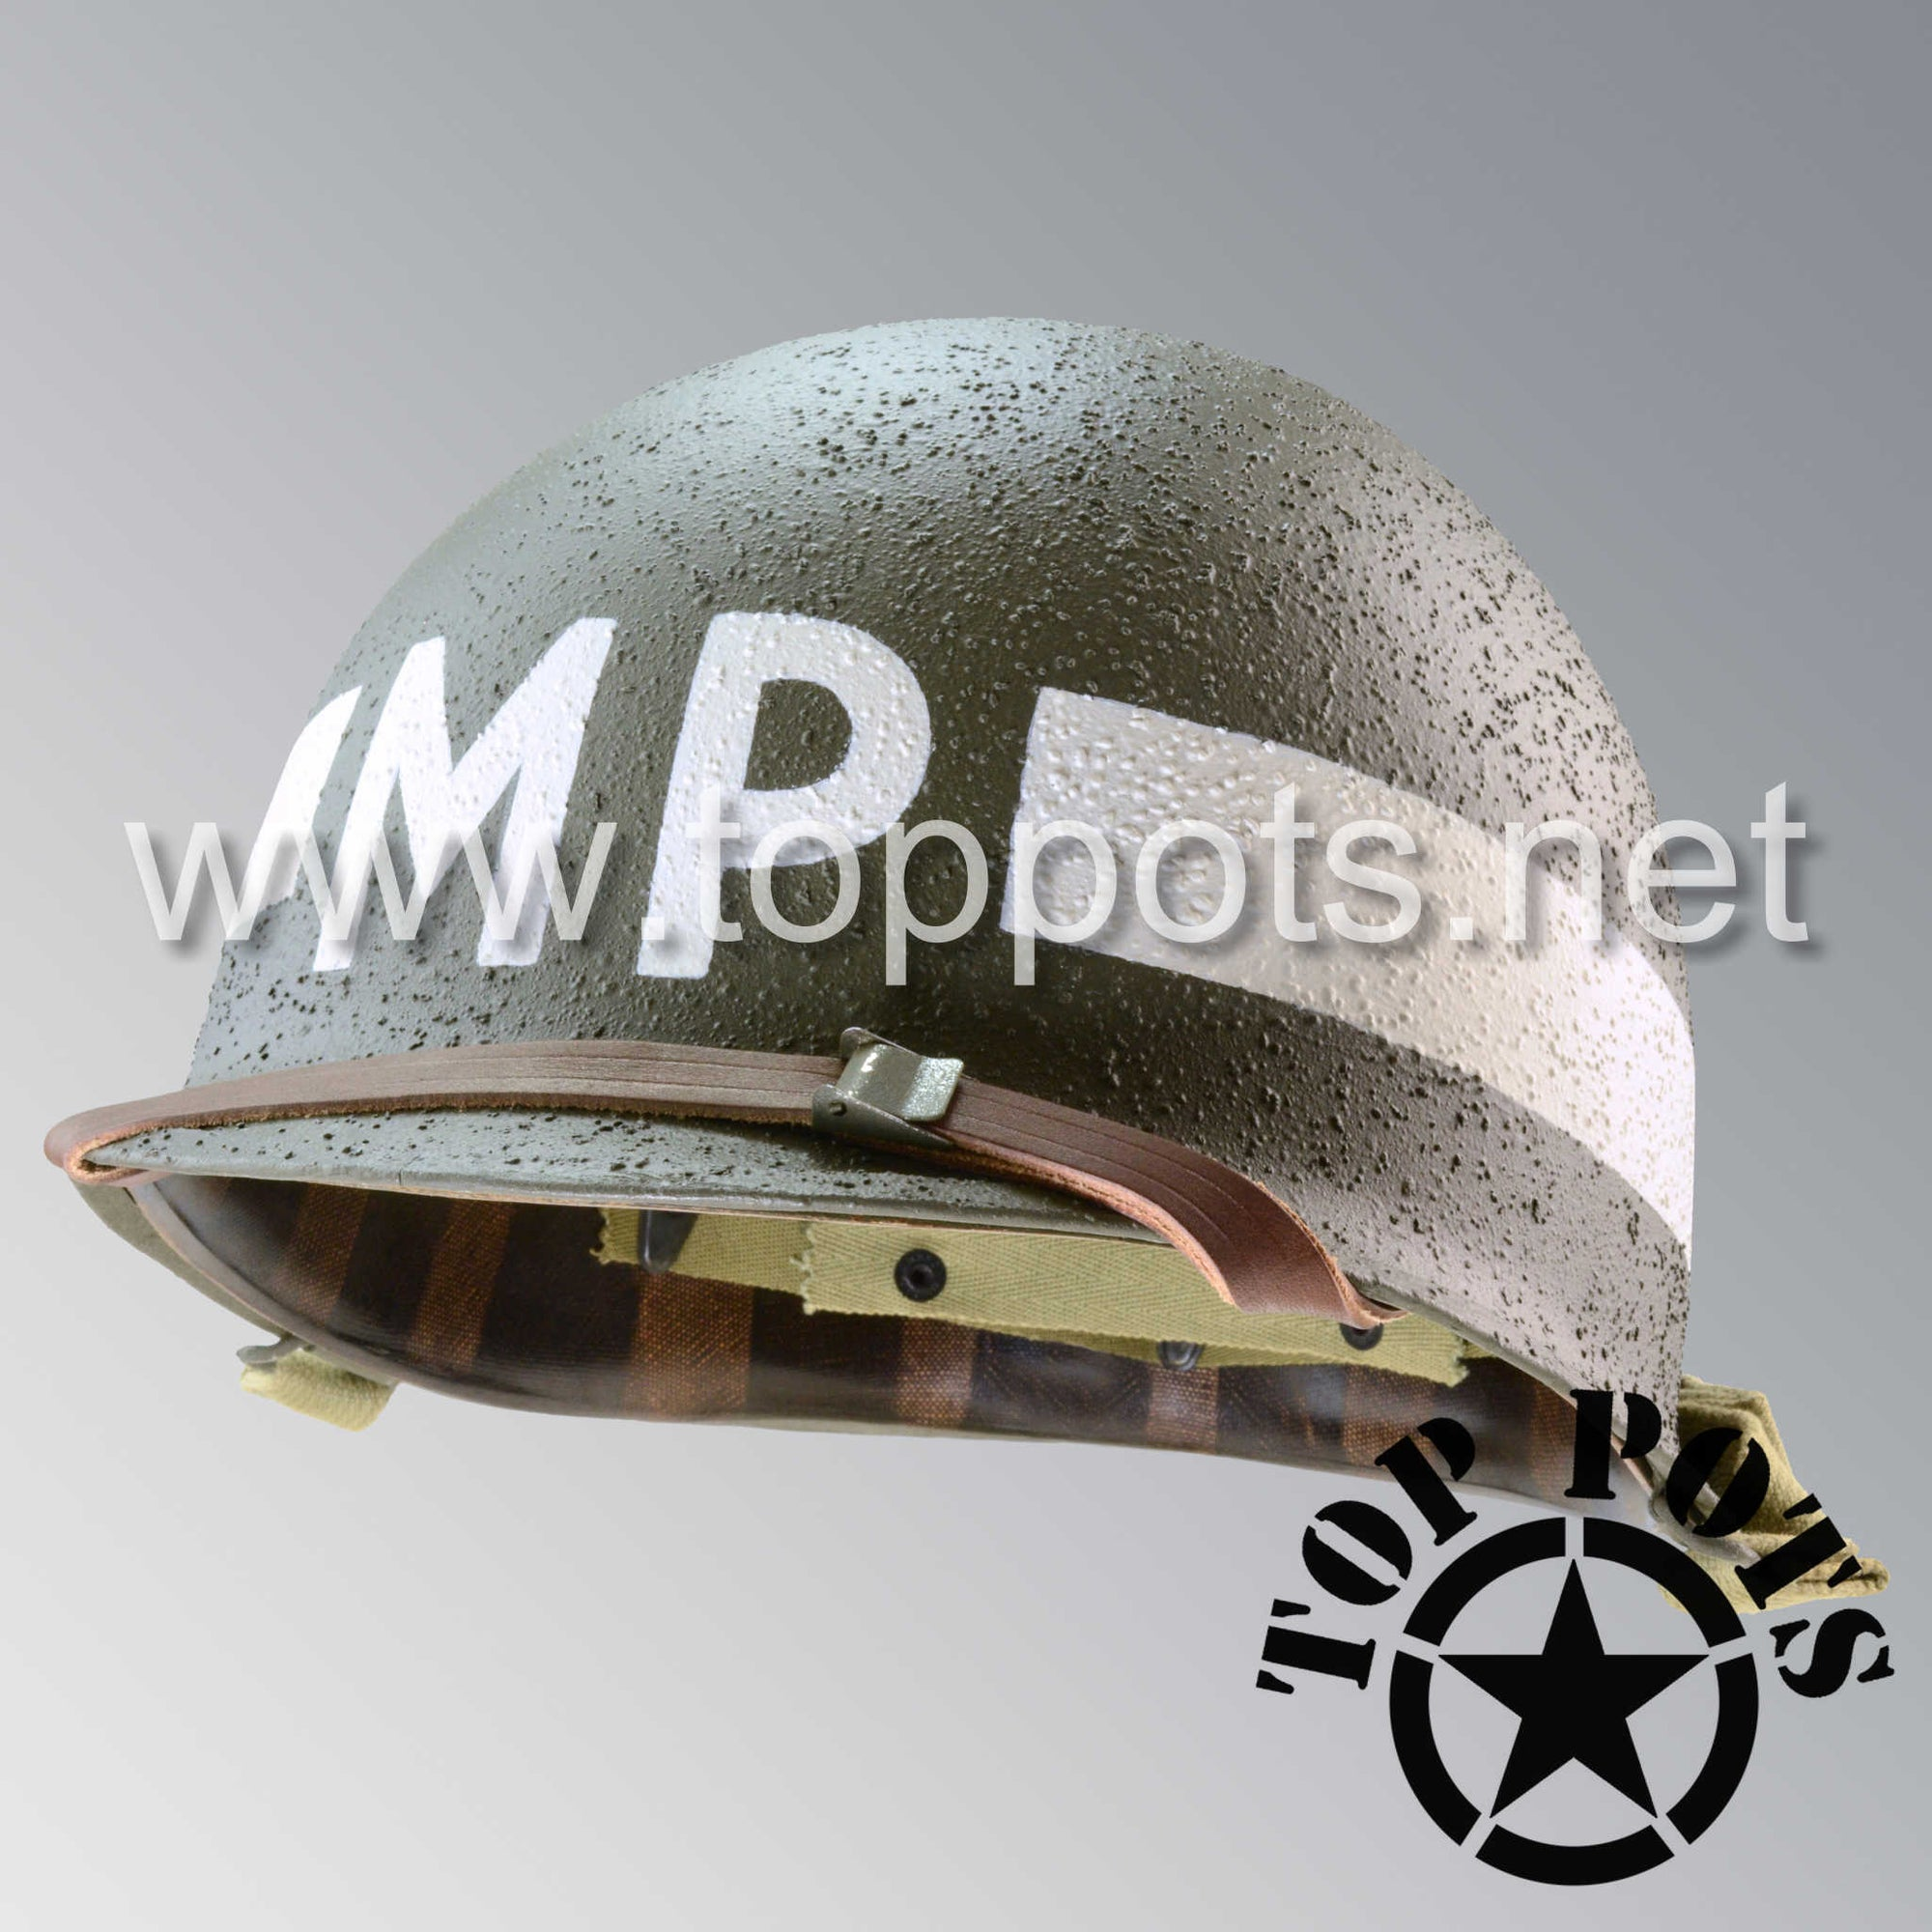 Image 1 of WWII US Army Restored Original M1 Infantry Helmet Swivel Bale Shell and Liner with White Battalion MP Military Police Emblem -Schlueter Shell